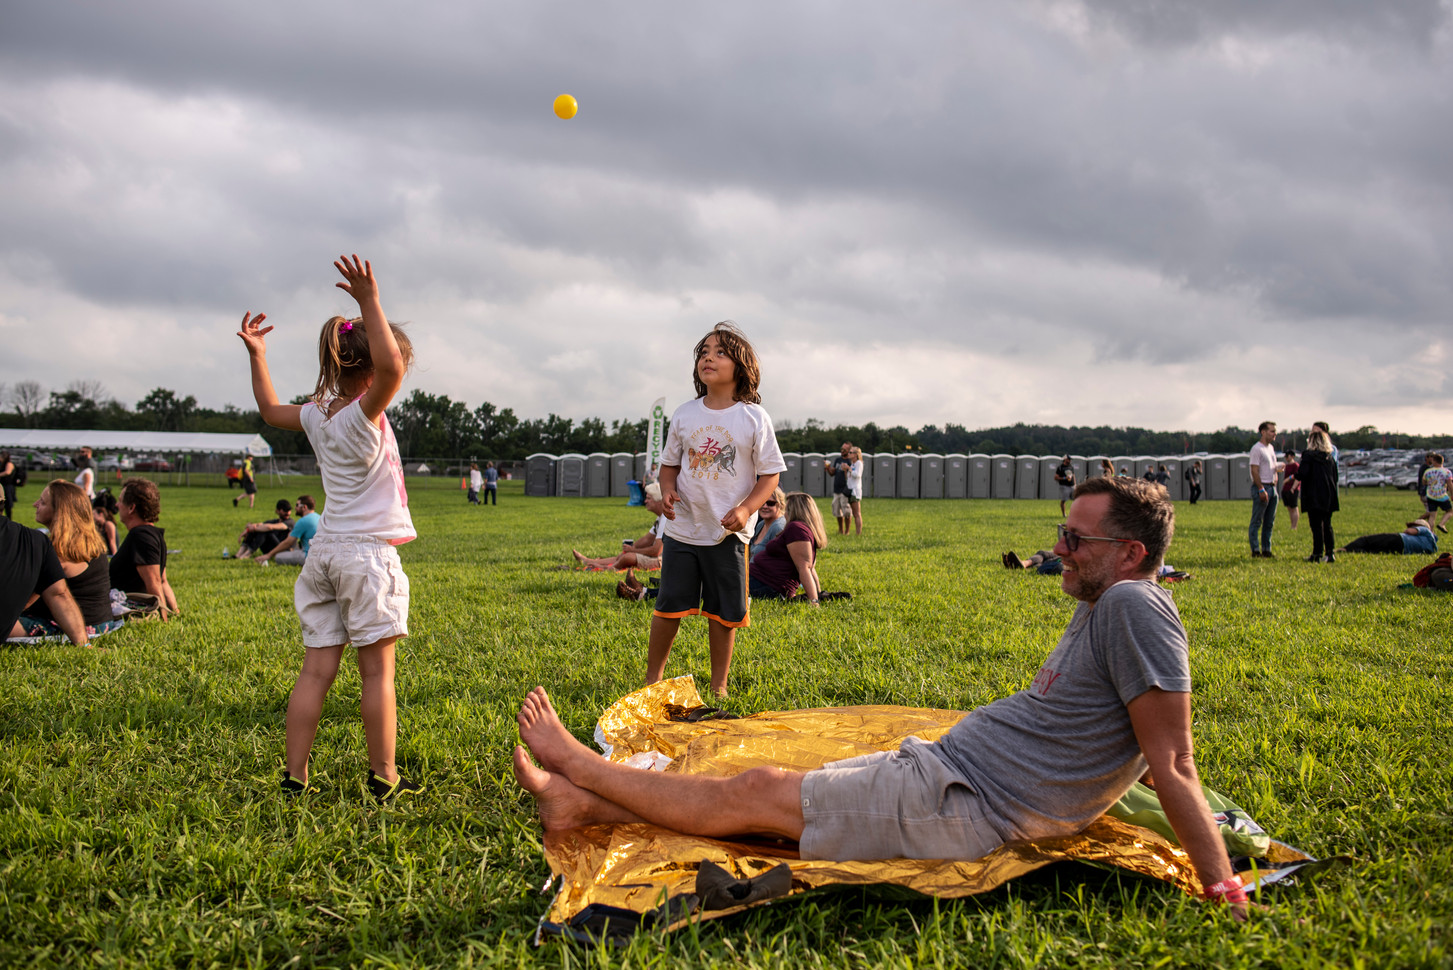 Two young kids toss a ball while their dad sits, waiting for the next band to begin playing at Bellwether Music Festival.